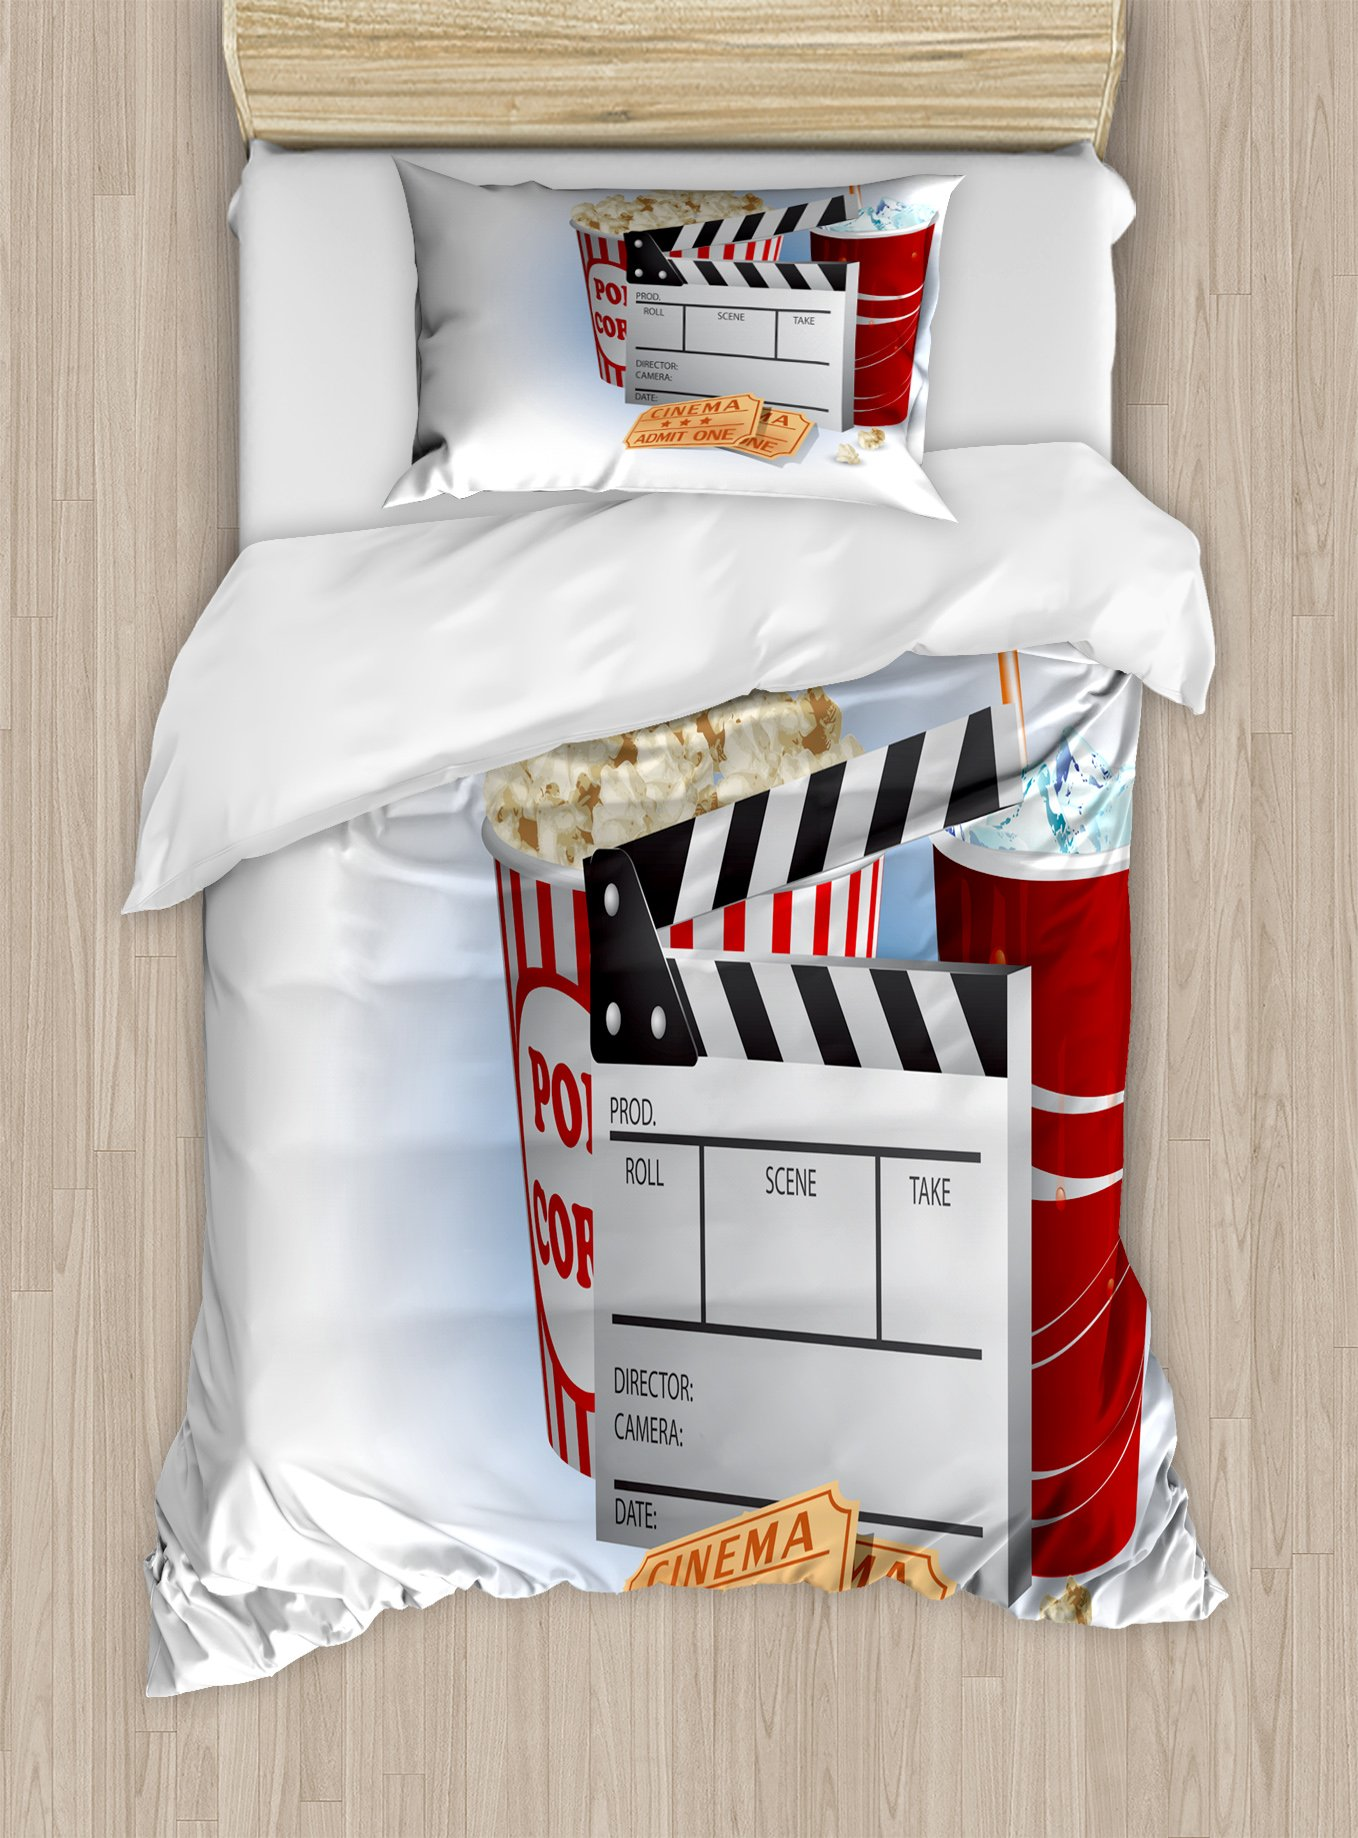 Ambesonne Movie Theater Twin Size Duvet Cover Set, Soda Tickets Fresh Popcorn and Clapper Board Blockbuster Premiere Cinema, Decorative 2 Piece Bedding Set with 1 Pillow Sham, Multicolor